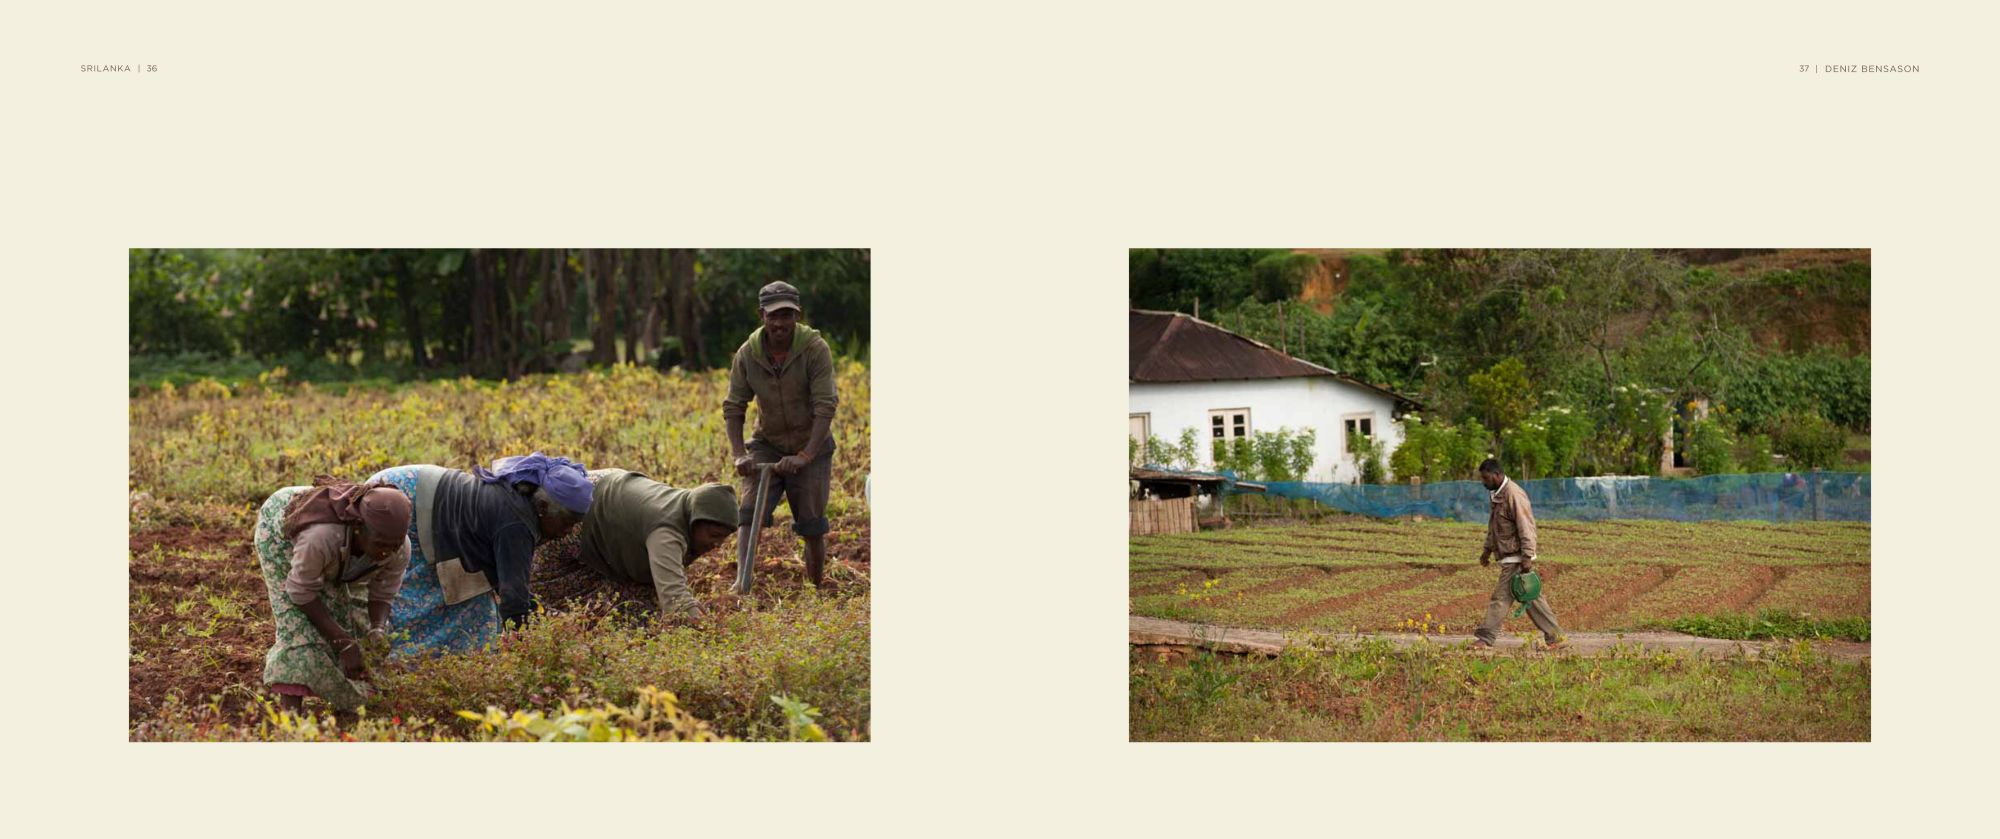 Sri-Lanka Album - Page 36: Working the Tea Fields / Page 37: On the Path